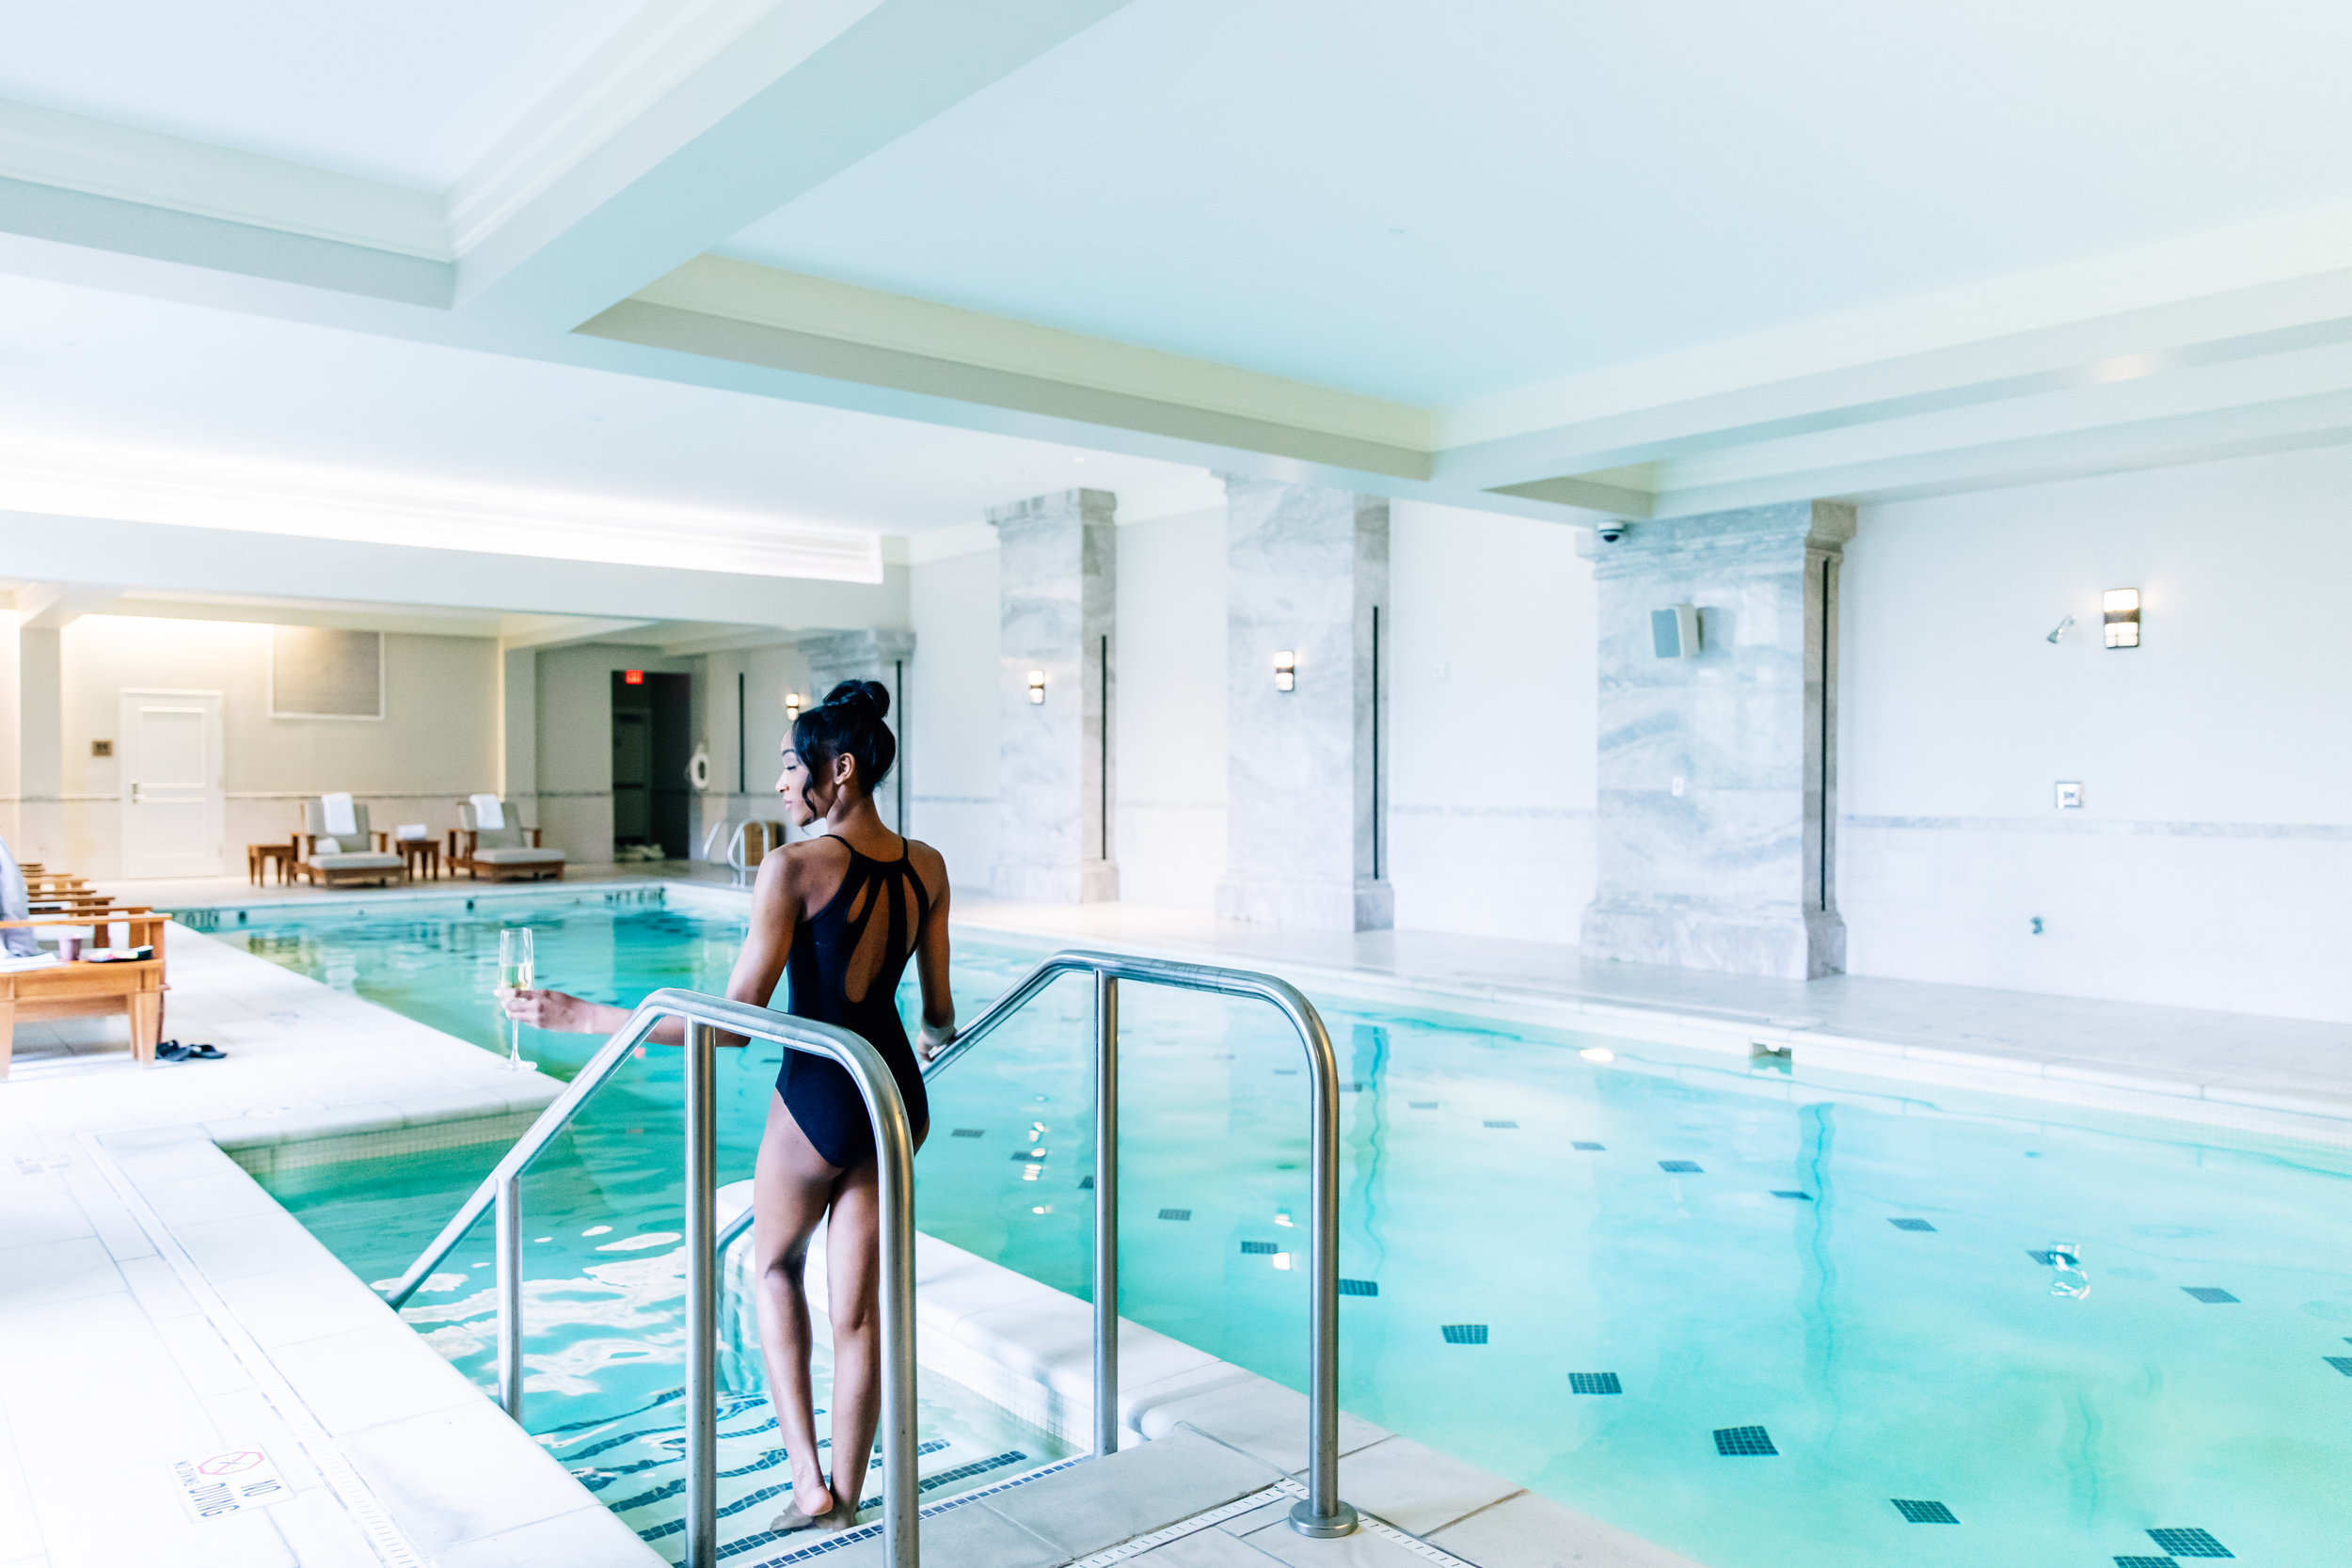 Insider Tip: Waldorf Astoria Atlanta Buckhead boasts an acclaimed 15,000–sq. ft. spa with award winning signature holistic therapies. The hotel also houses the largest hydrothermal facilities in Atlanta.